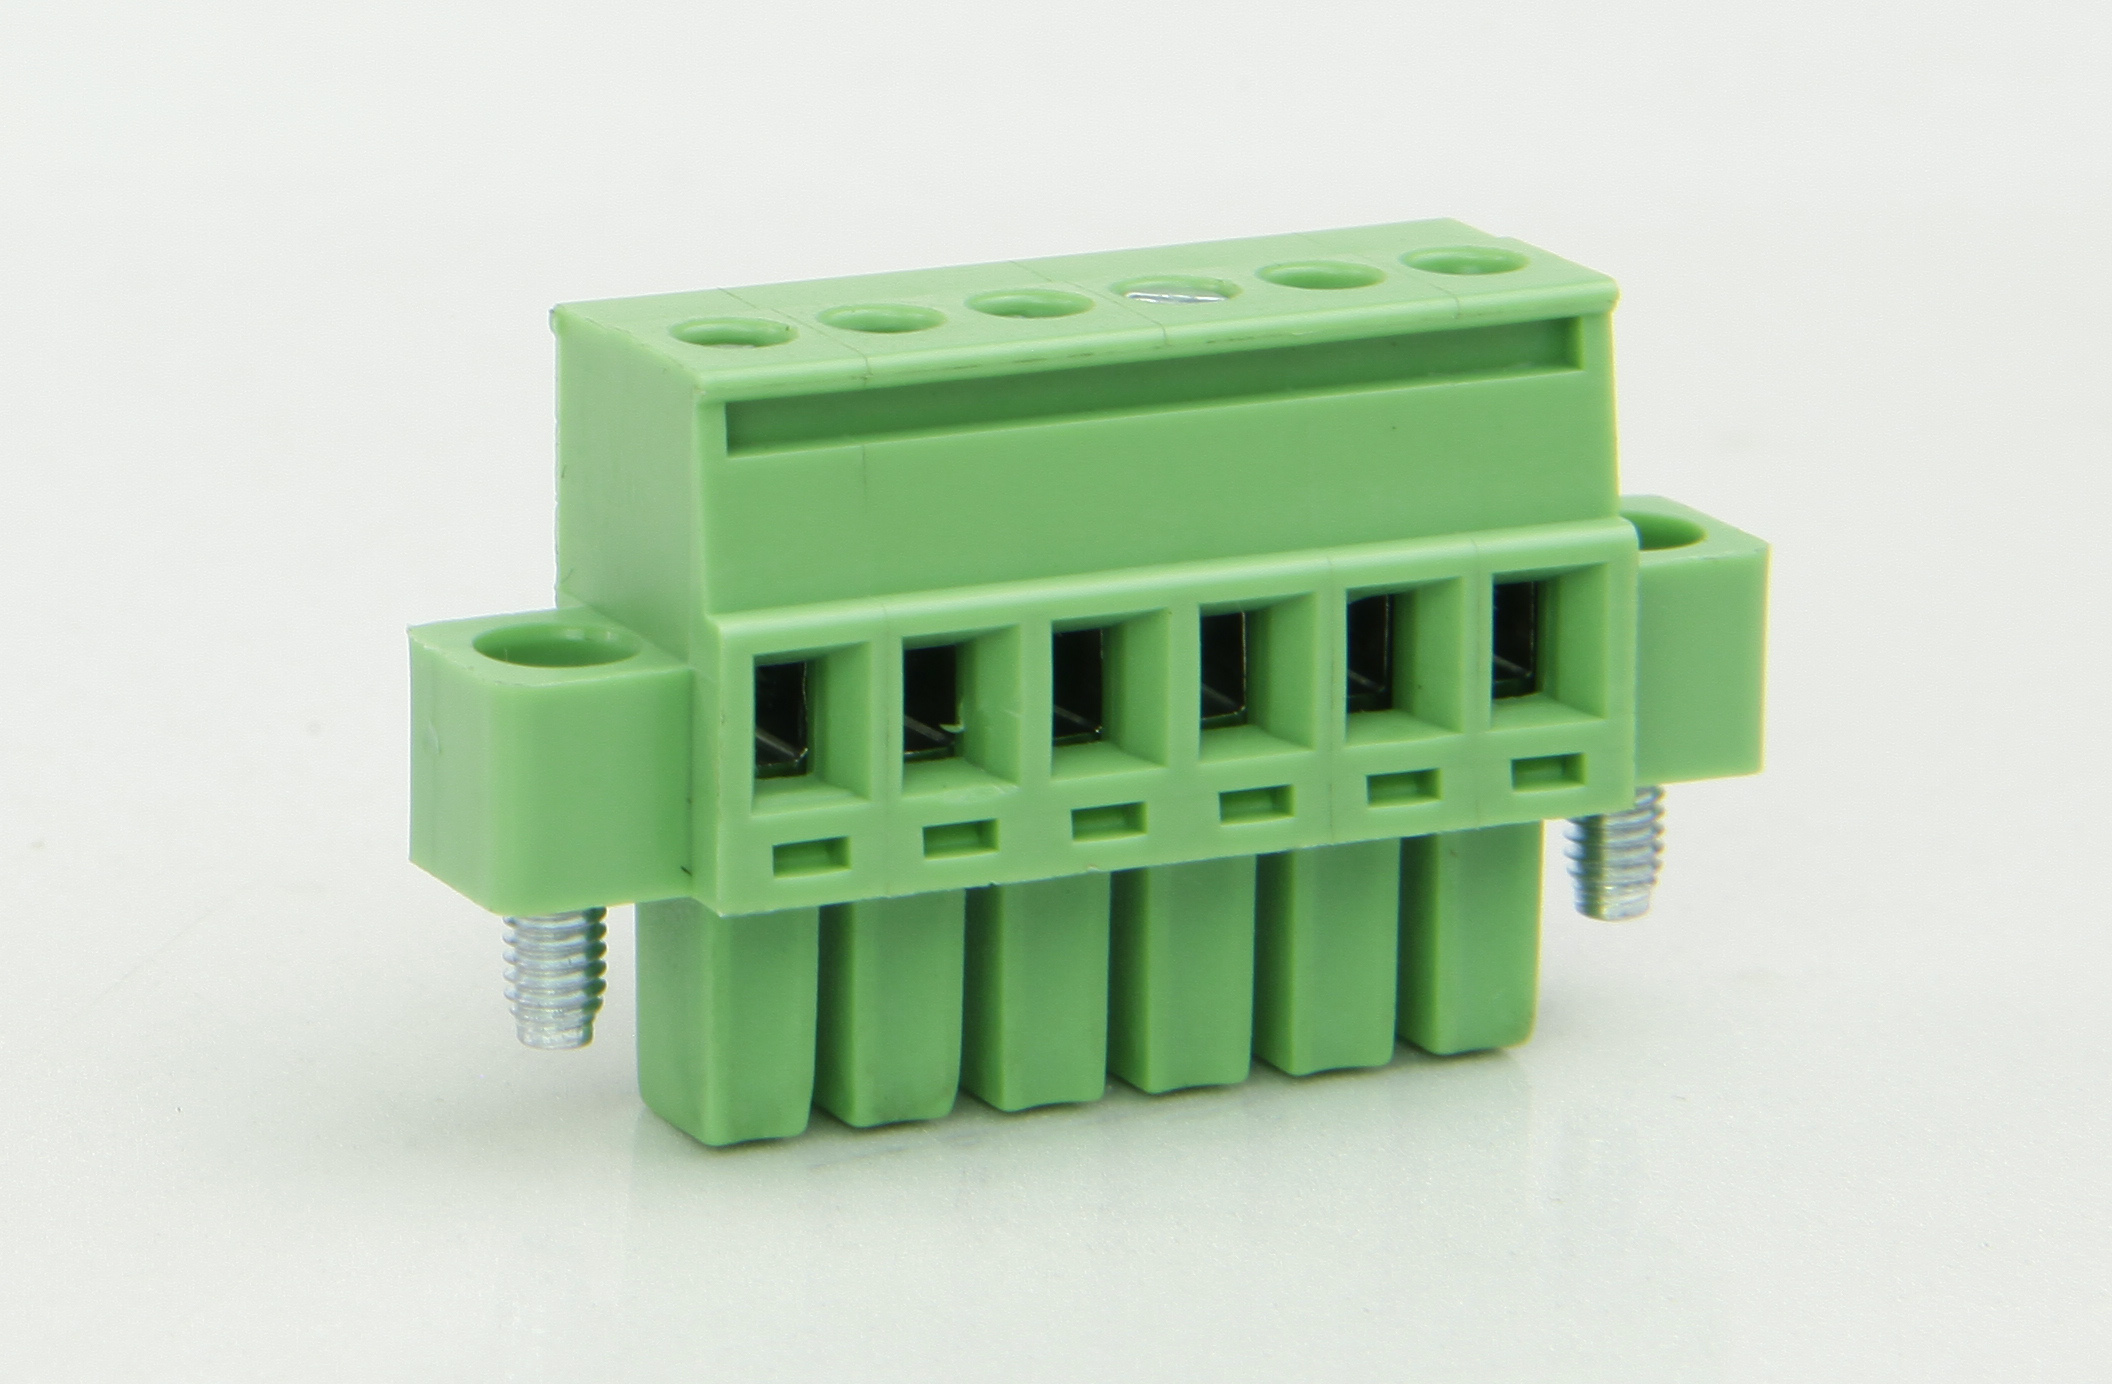 15ELPKBM-3.81 PCB Connector